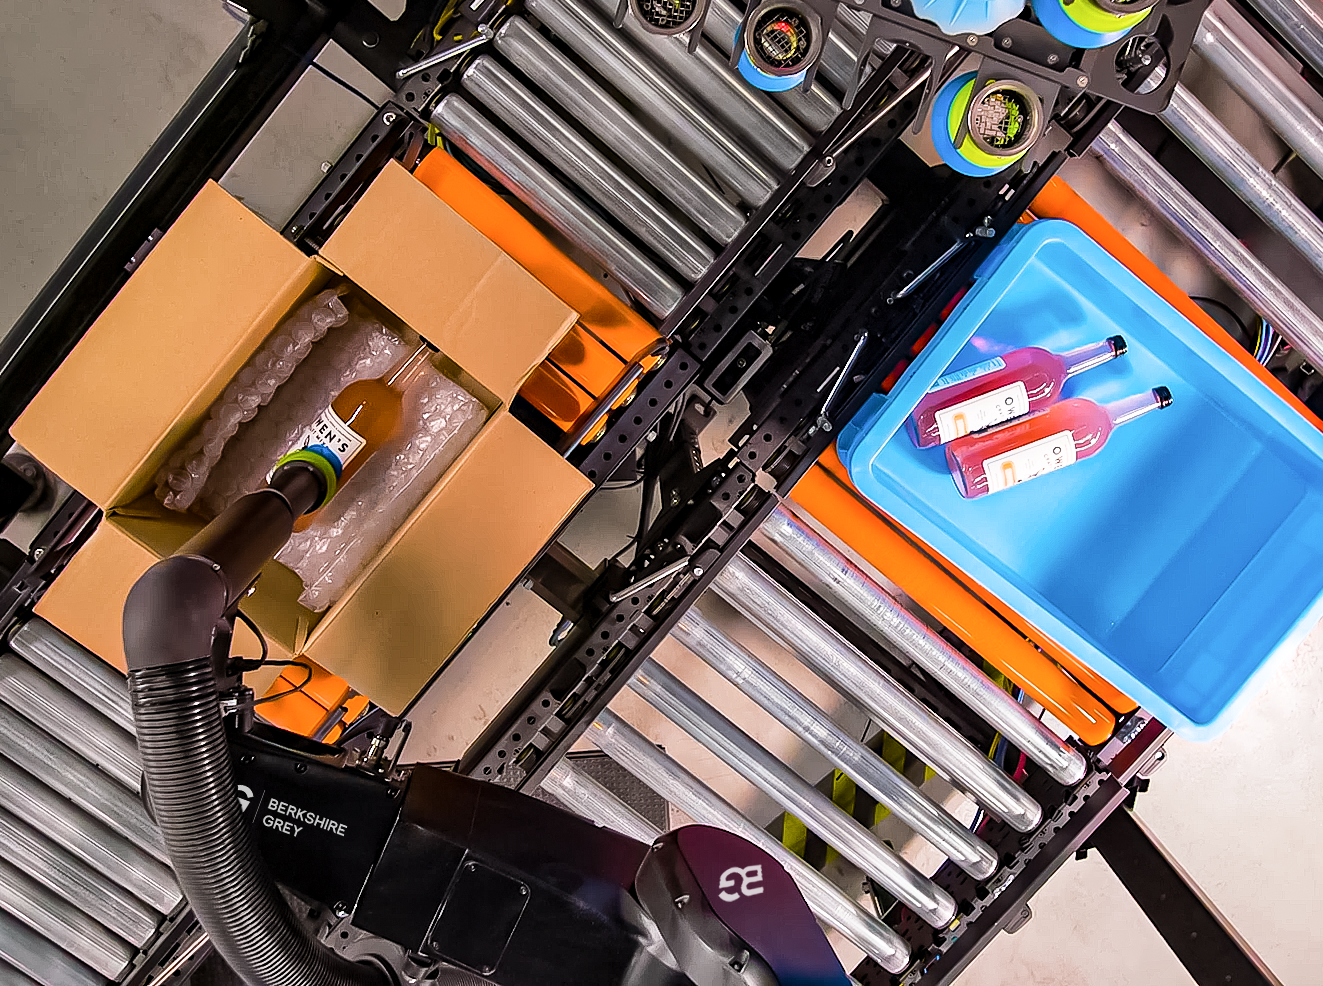 Berkshire Grey Announces Global Availability of its AI-Enabled Robotic Pick and Pack (RPP) Solutions for e-Commerce Fulfillment Following Successful Customer Deployments